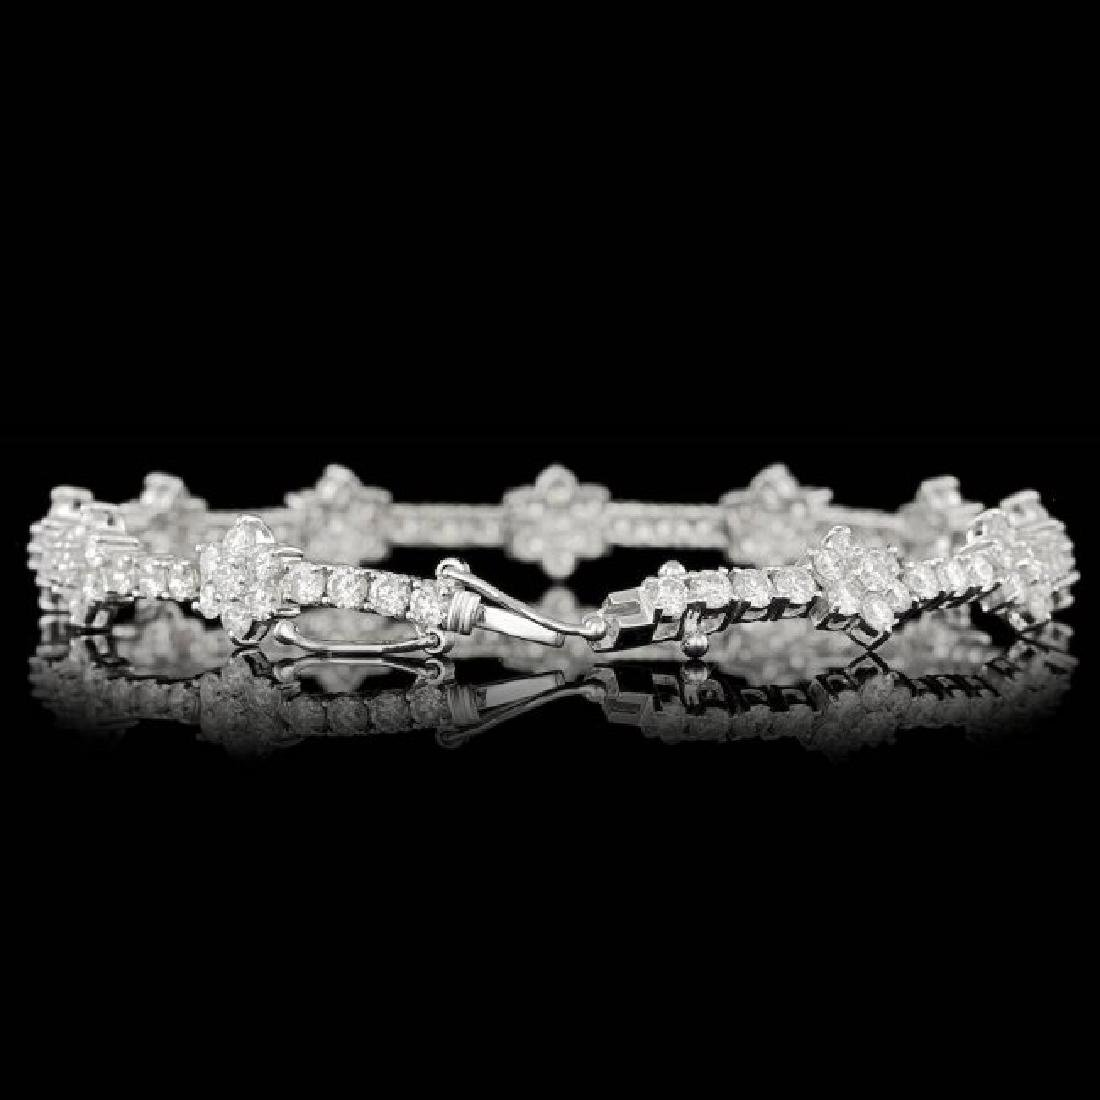 18k White Gold 6.80ct Diamond Bracelet - 2